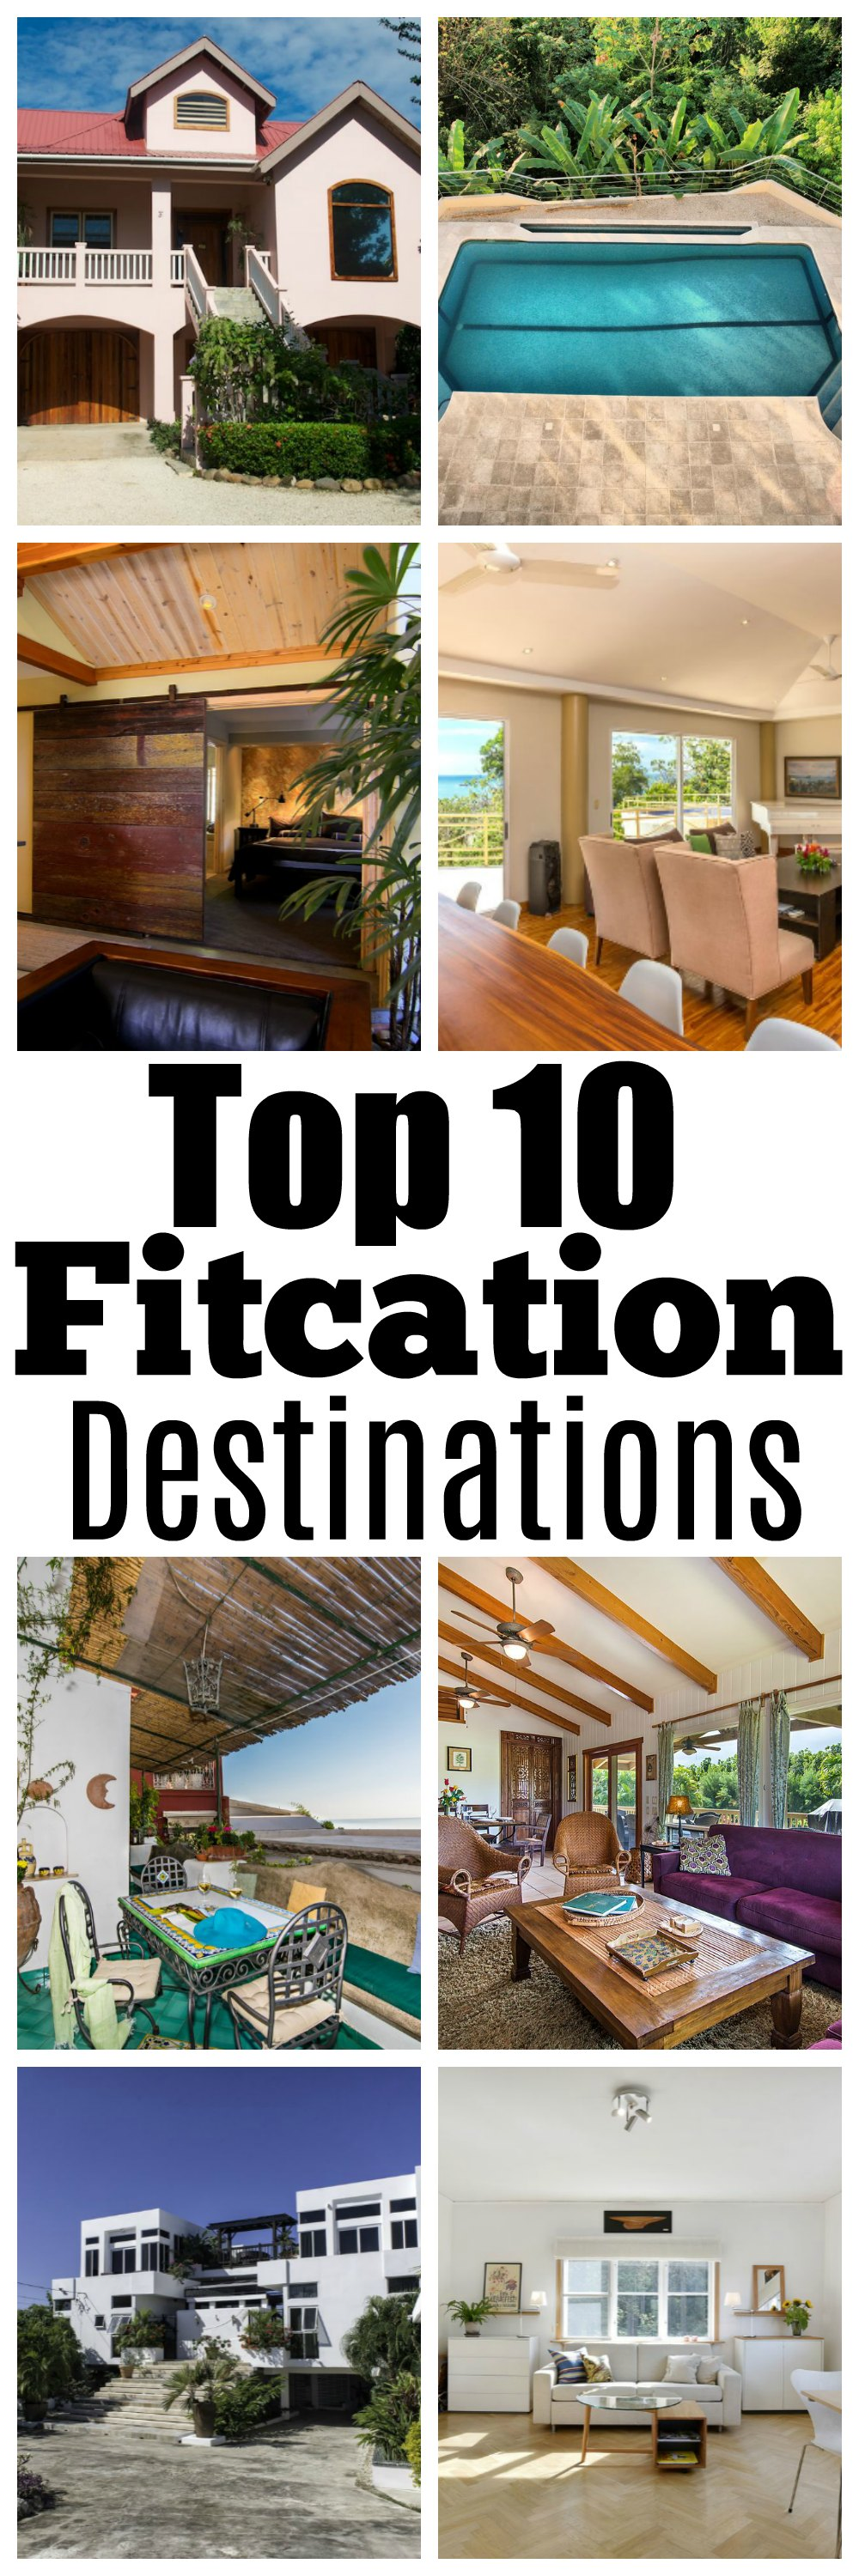 top 10 fitcation destinations - Top 10 Fitness Vacation Destinations with HomeAway by Atlanta fitness blogger Happily Hughes